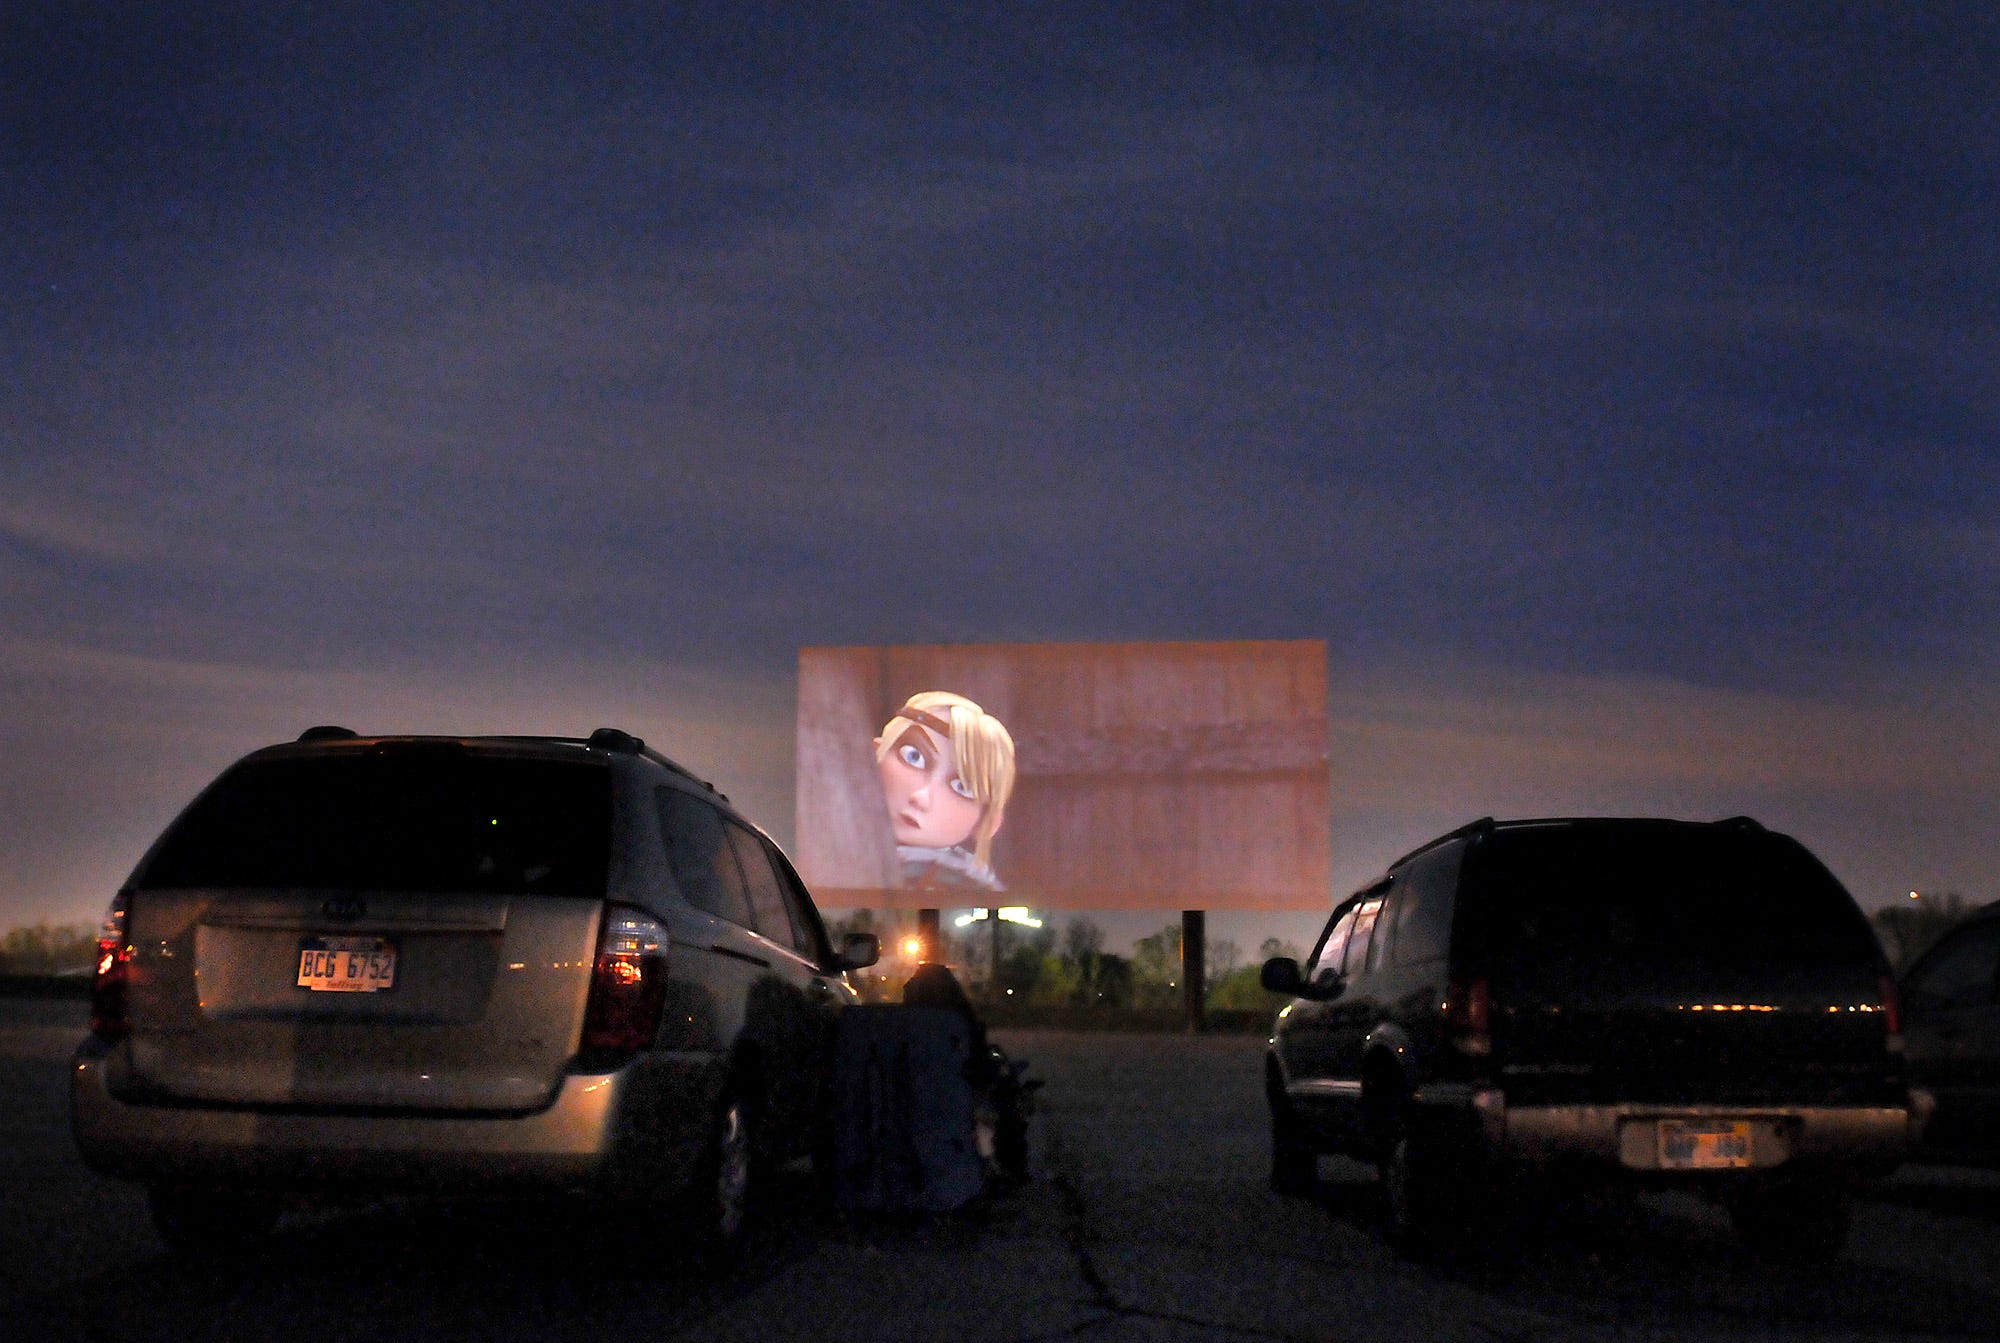 Moviegoers sit in their vehicles and watch the movie